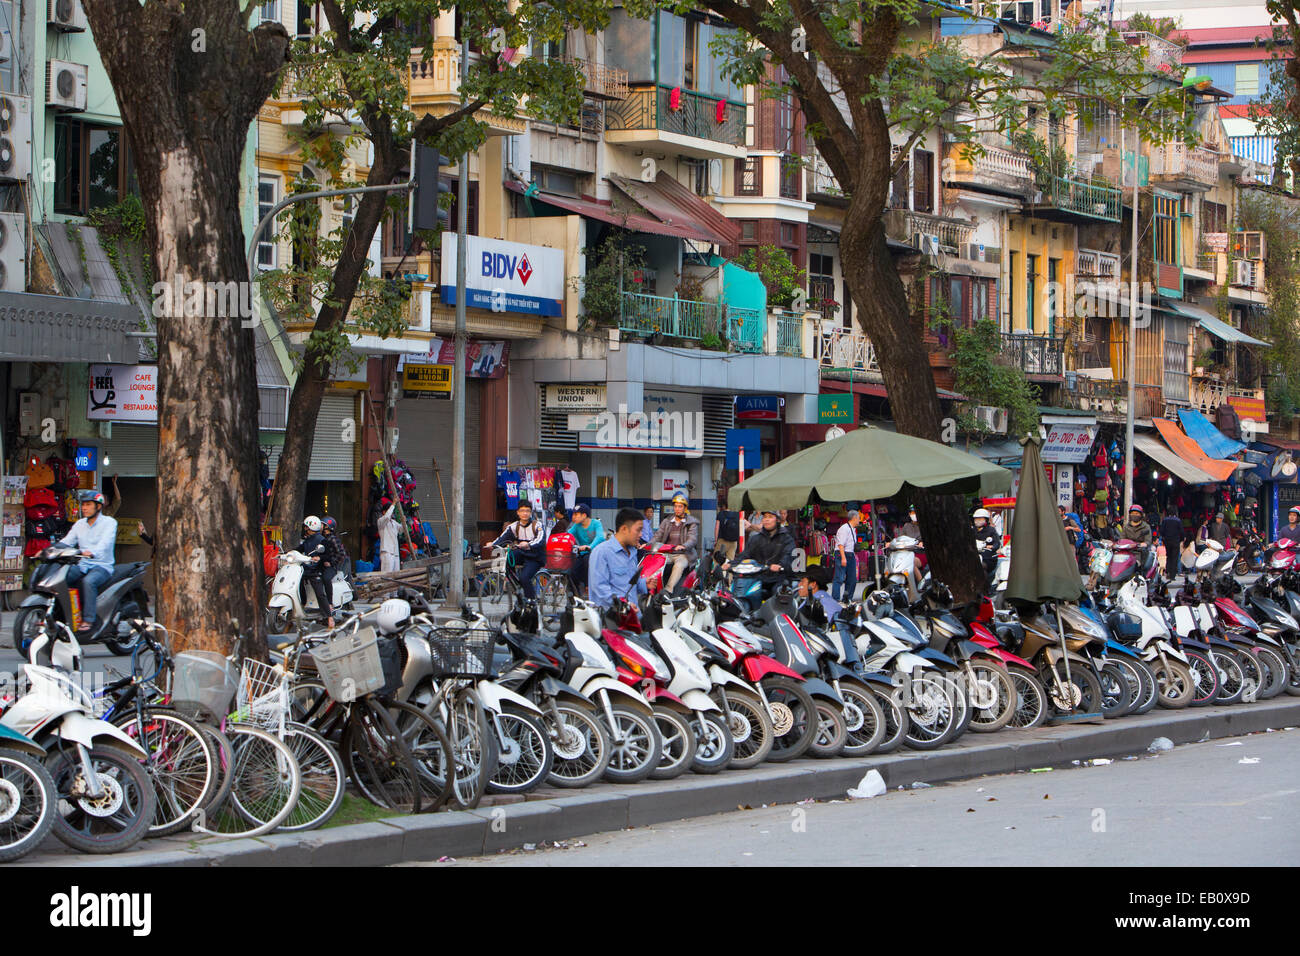 Hanoi street scene of motorcycles in Vietnam - Stock Image